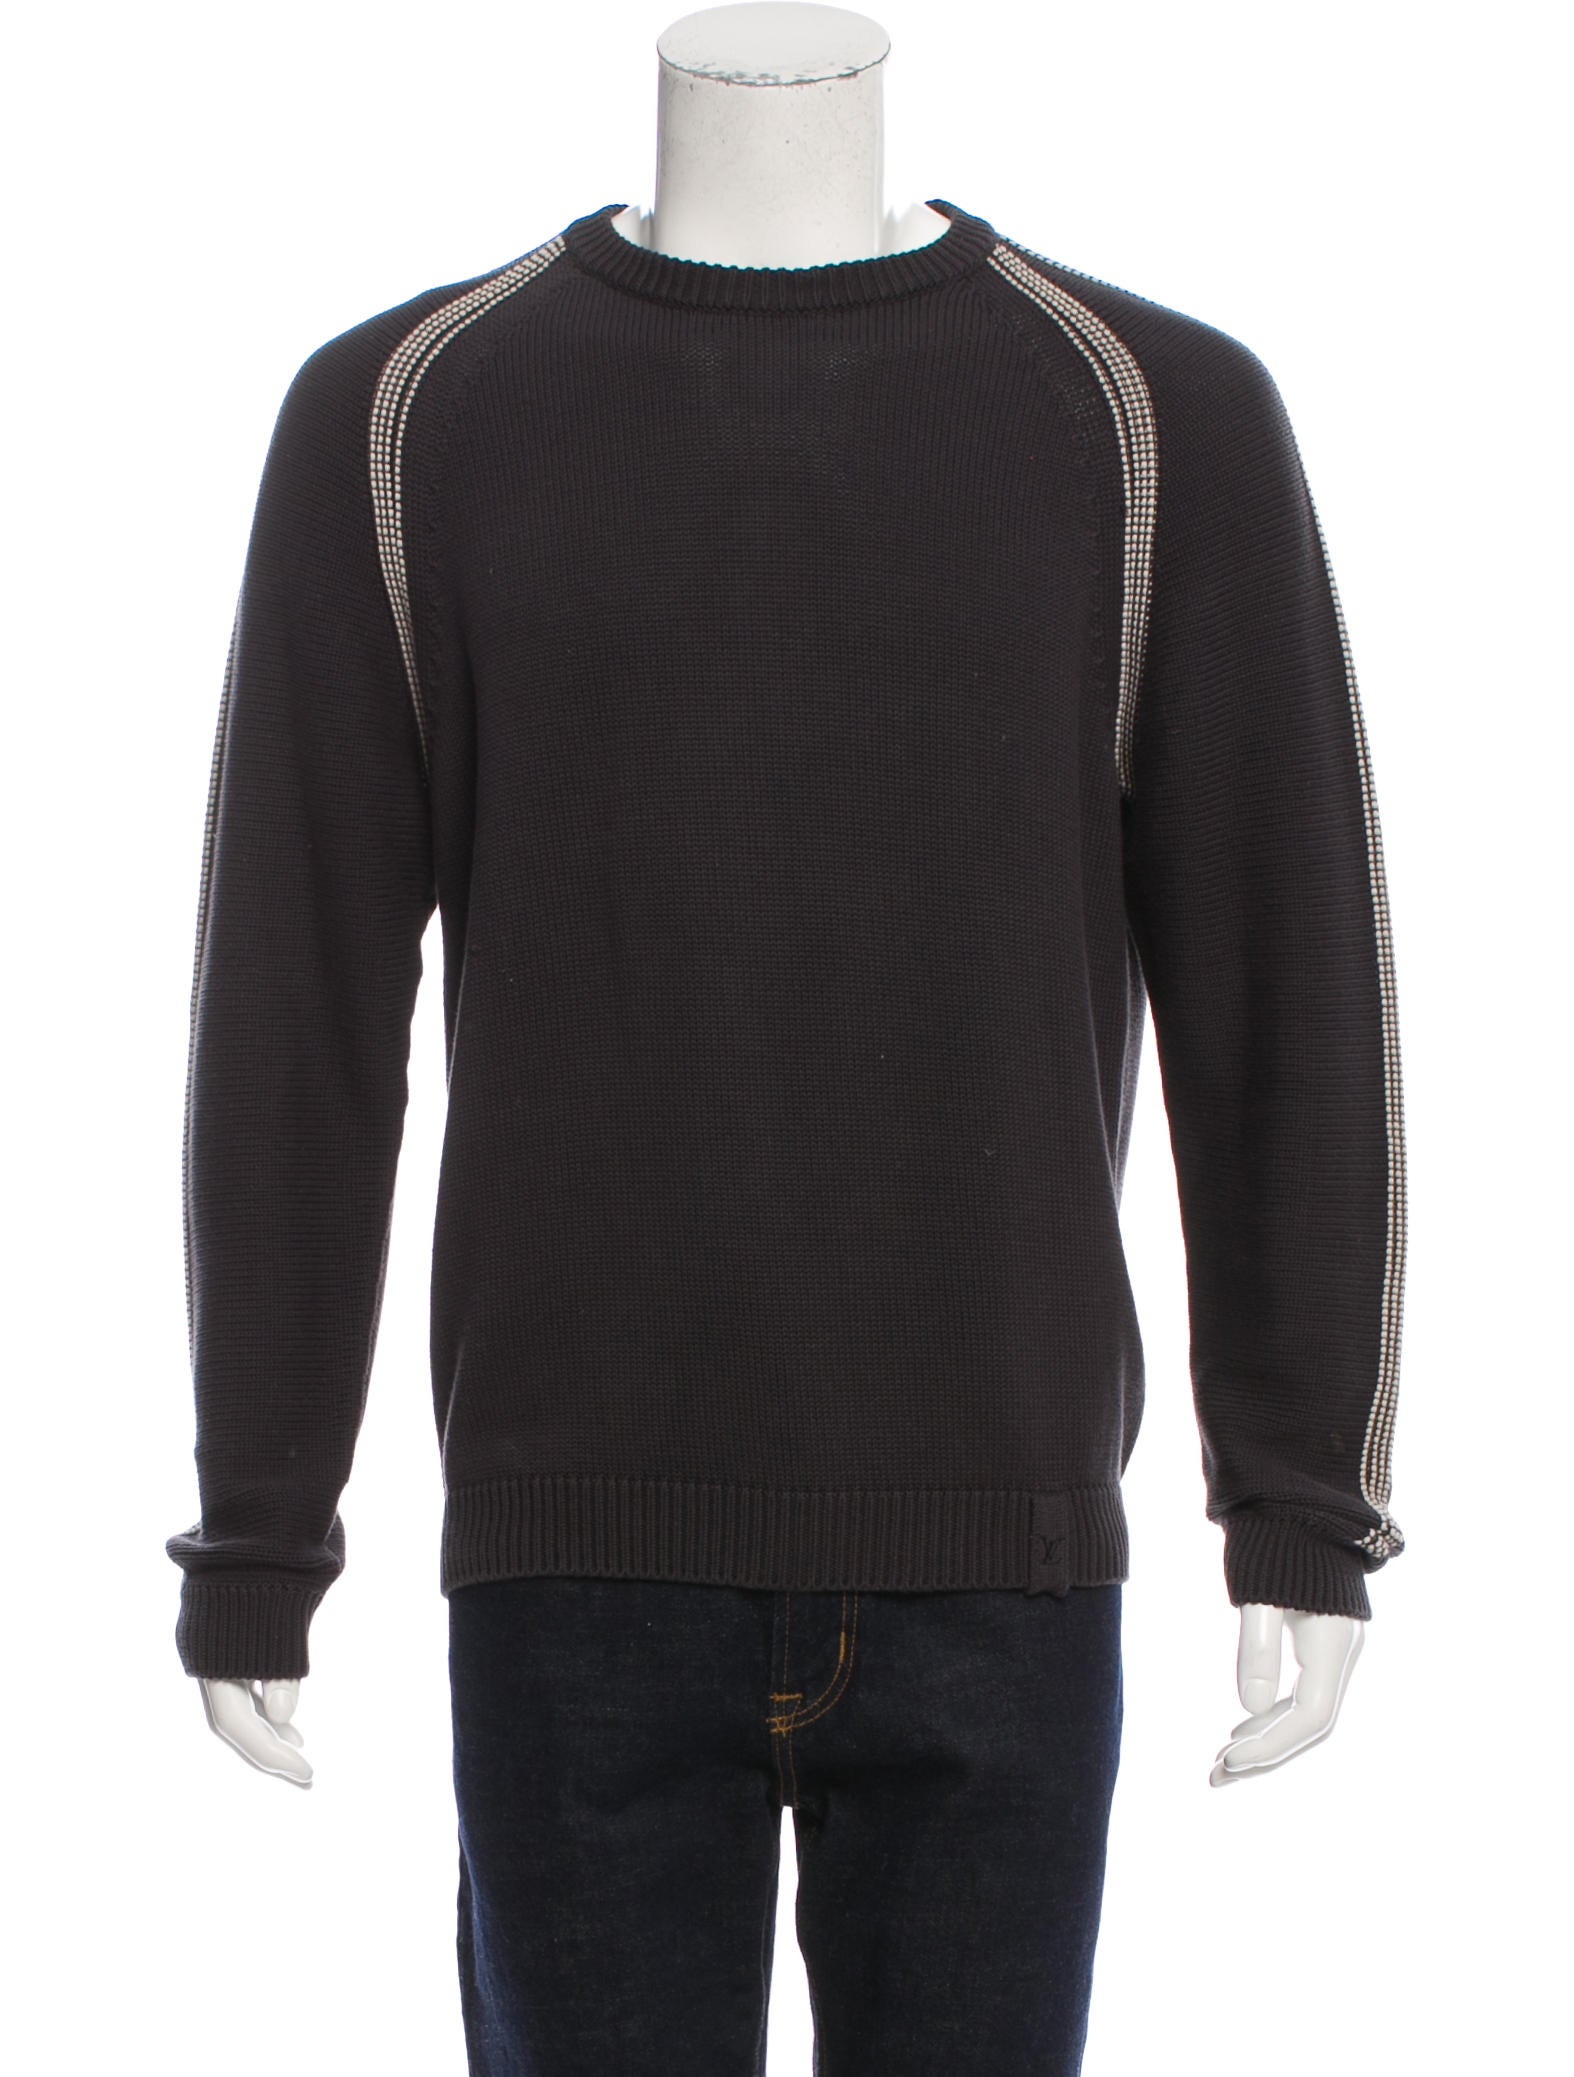 louis vuitton rib knit crew neck sweater clothing. Black Bedroom Furniture Sets. Home Design Ideas